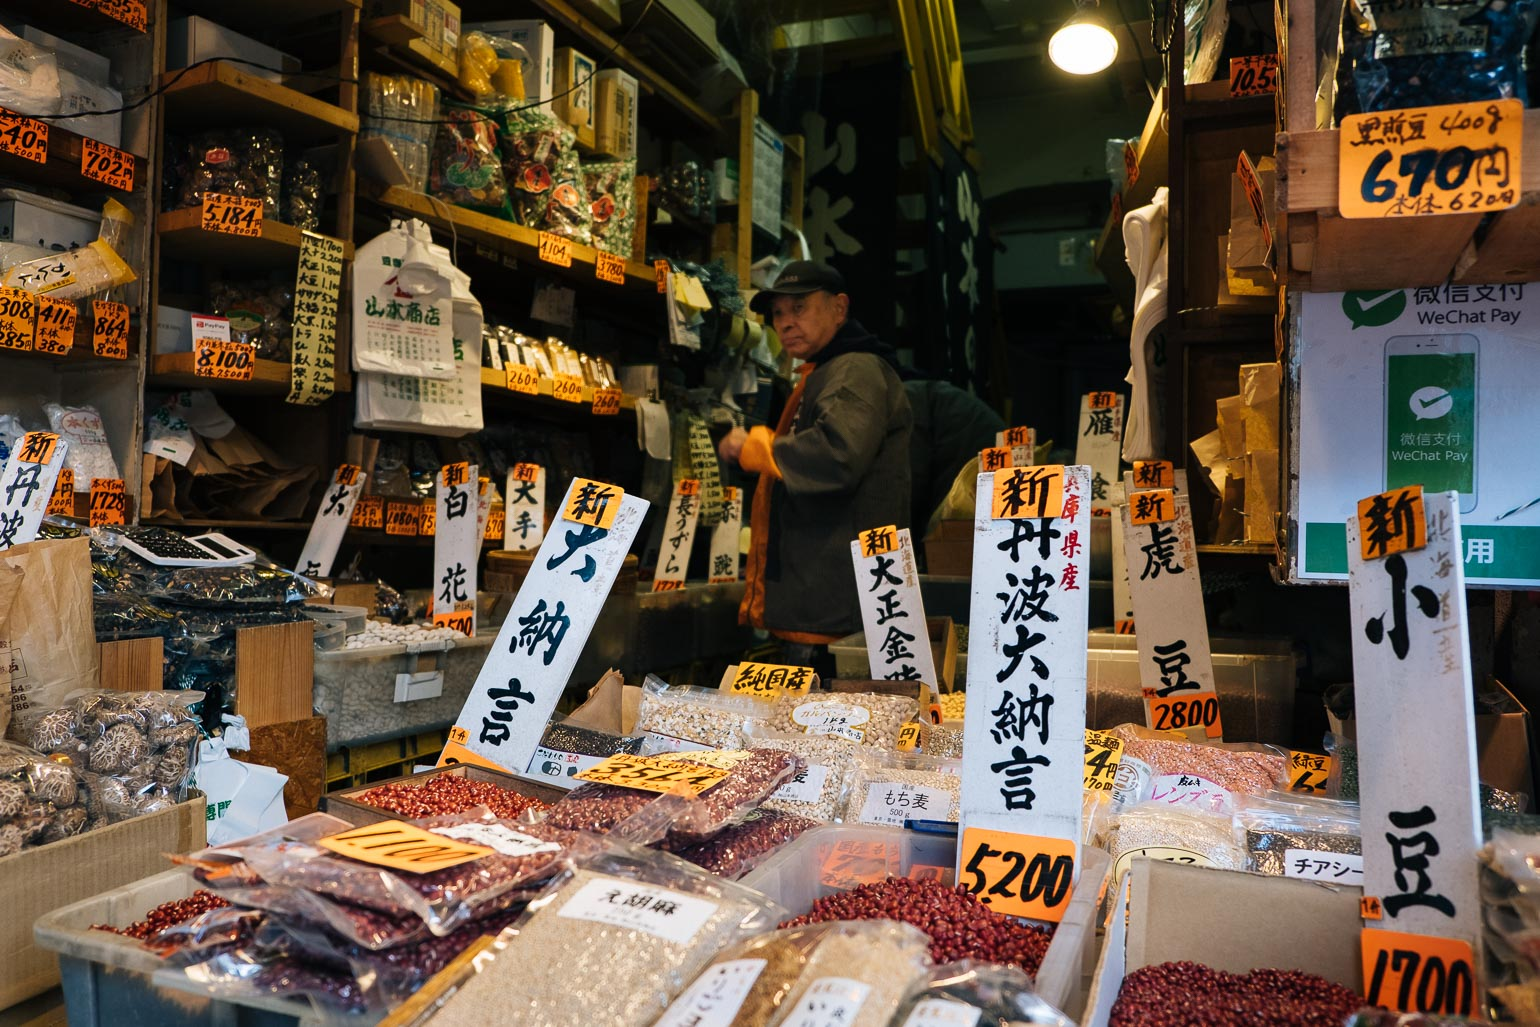 Bagged produce shop at Tsukiji Fish Market